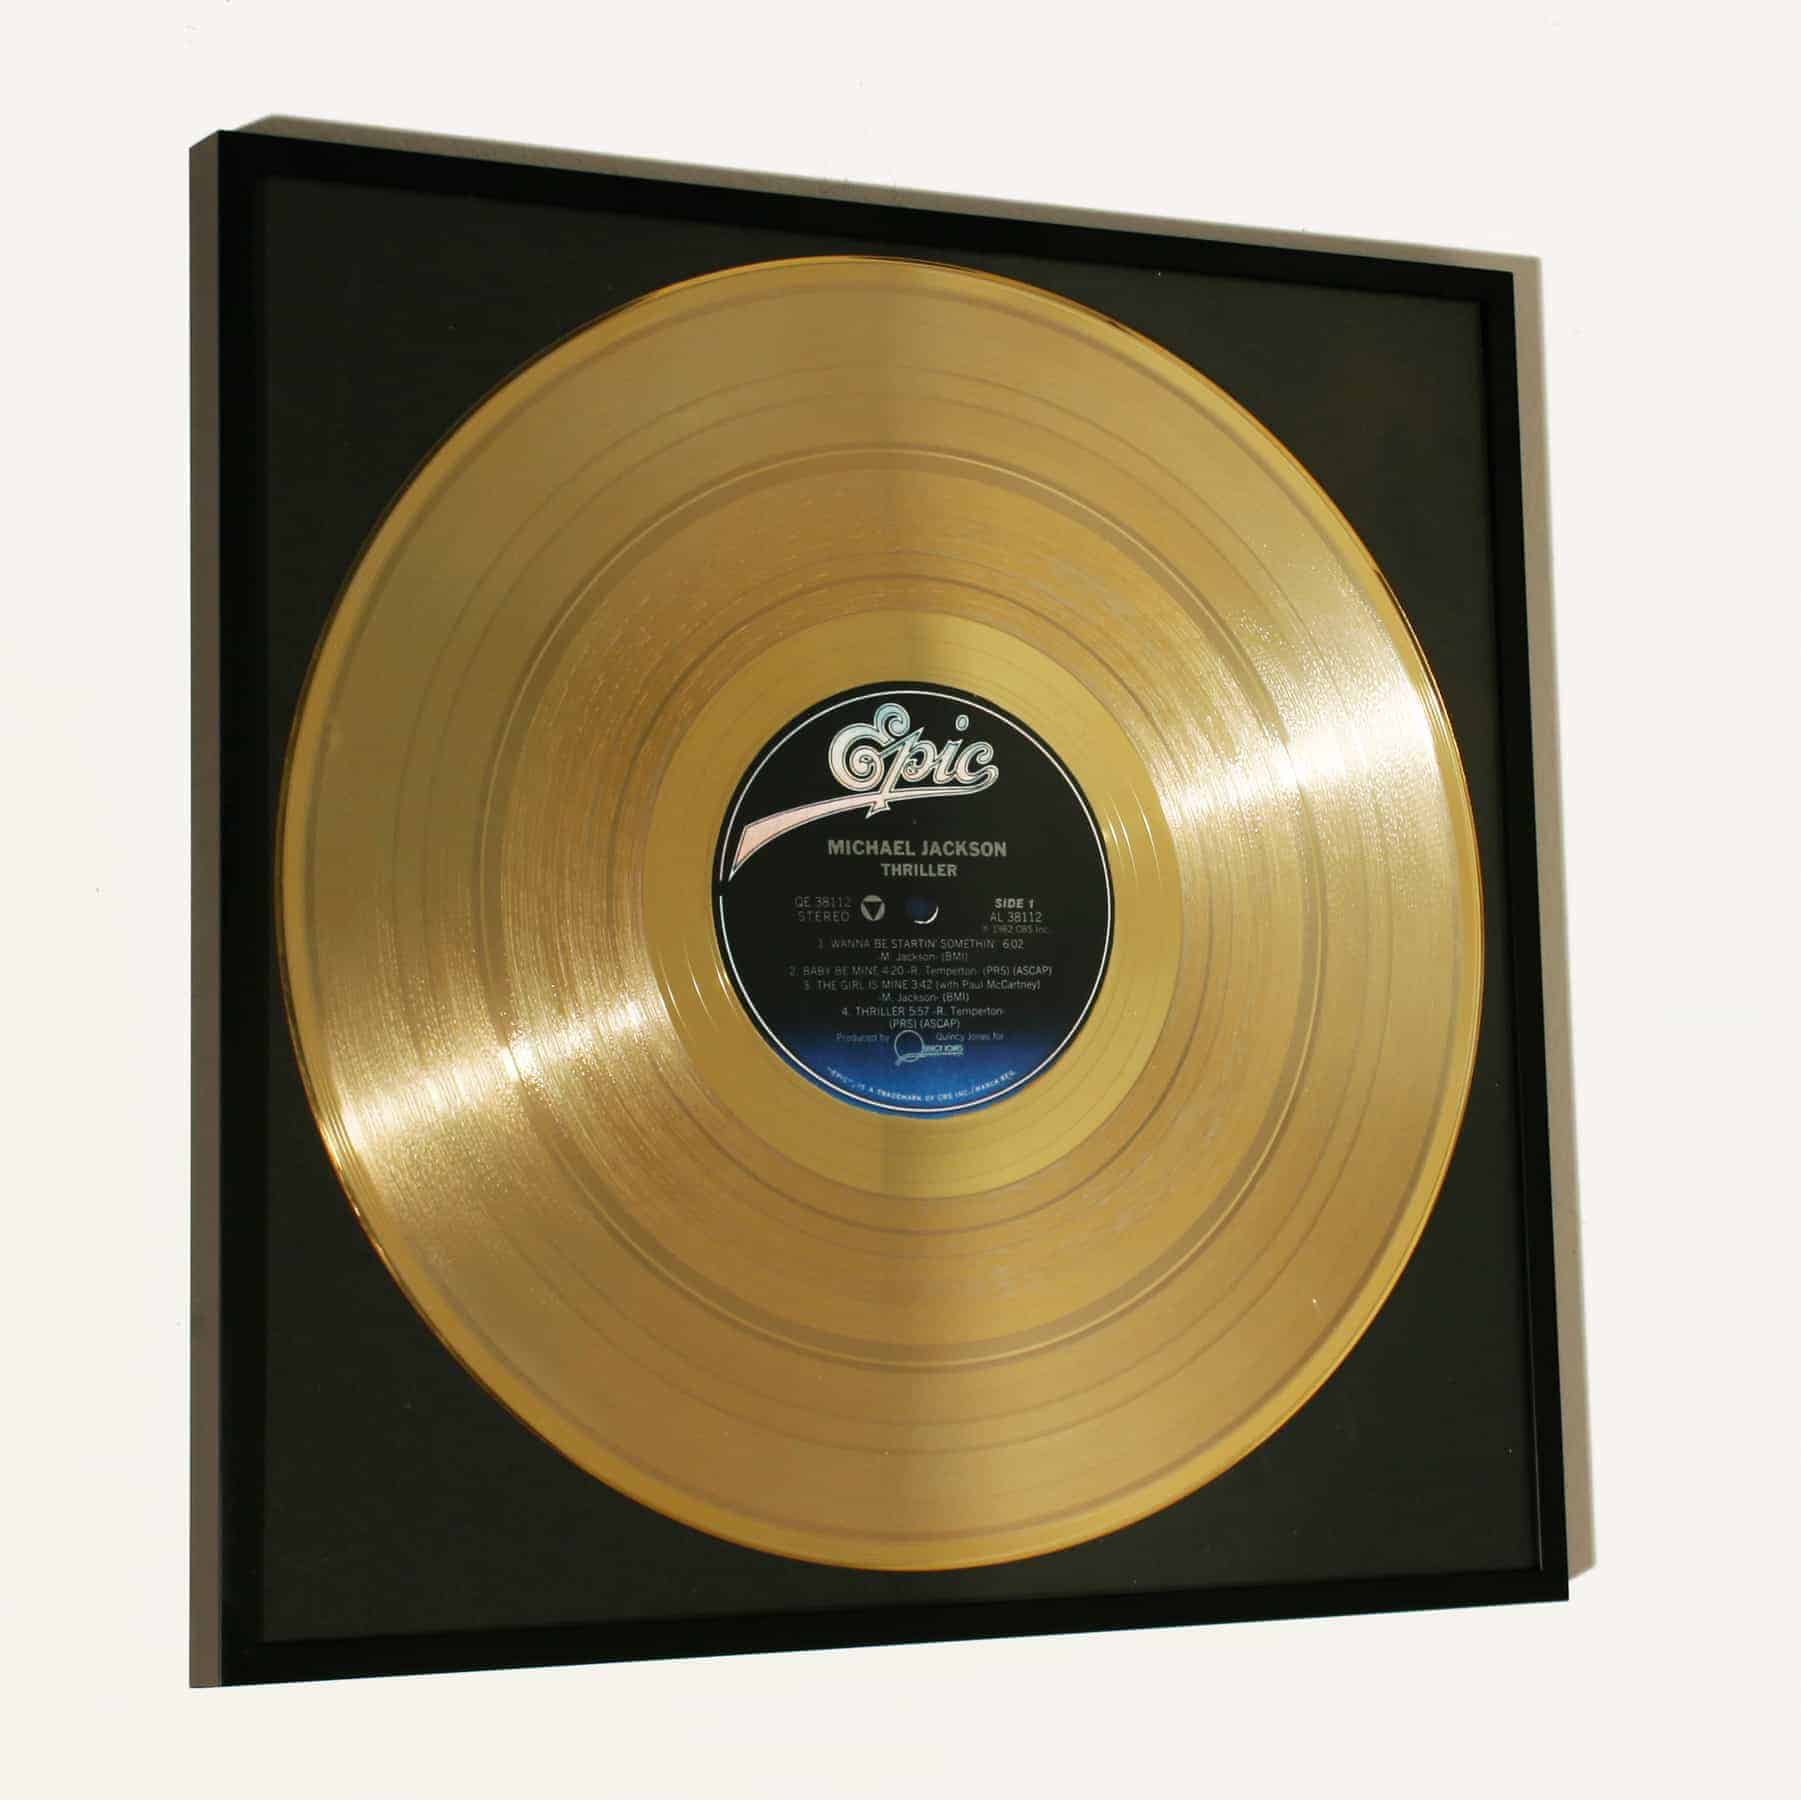 MICHAEL JACKSON – THRILLER: FRAMED GOLD PLATED VINYL RECORD